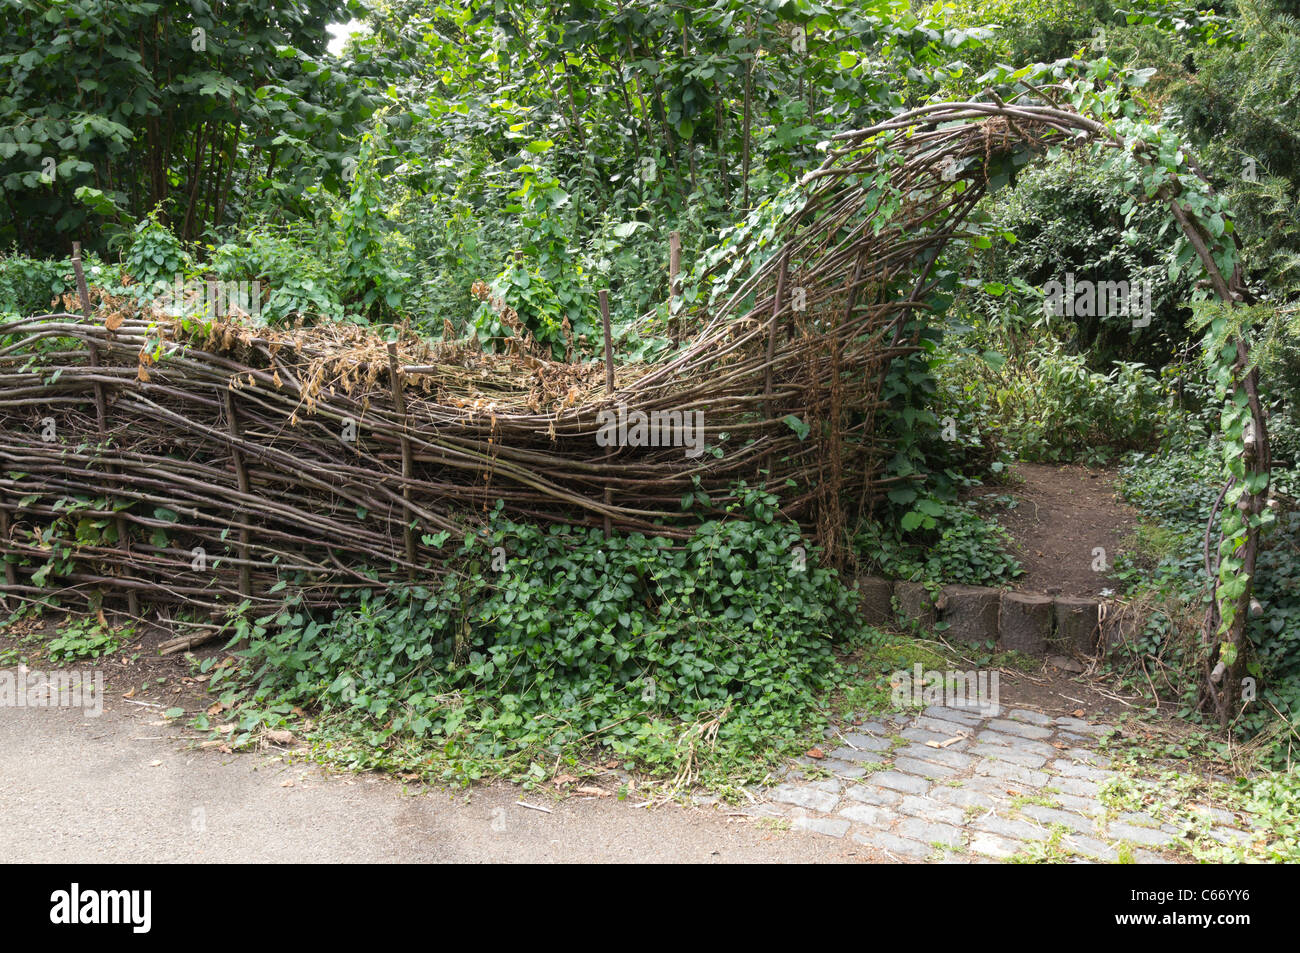 A Hedge Barrier Woven From Sticks And Filled With Garden Clippings Provides  A Habitat